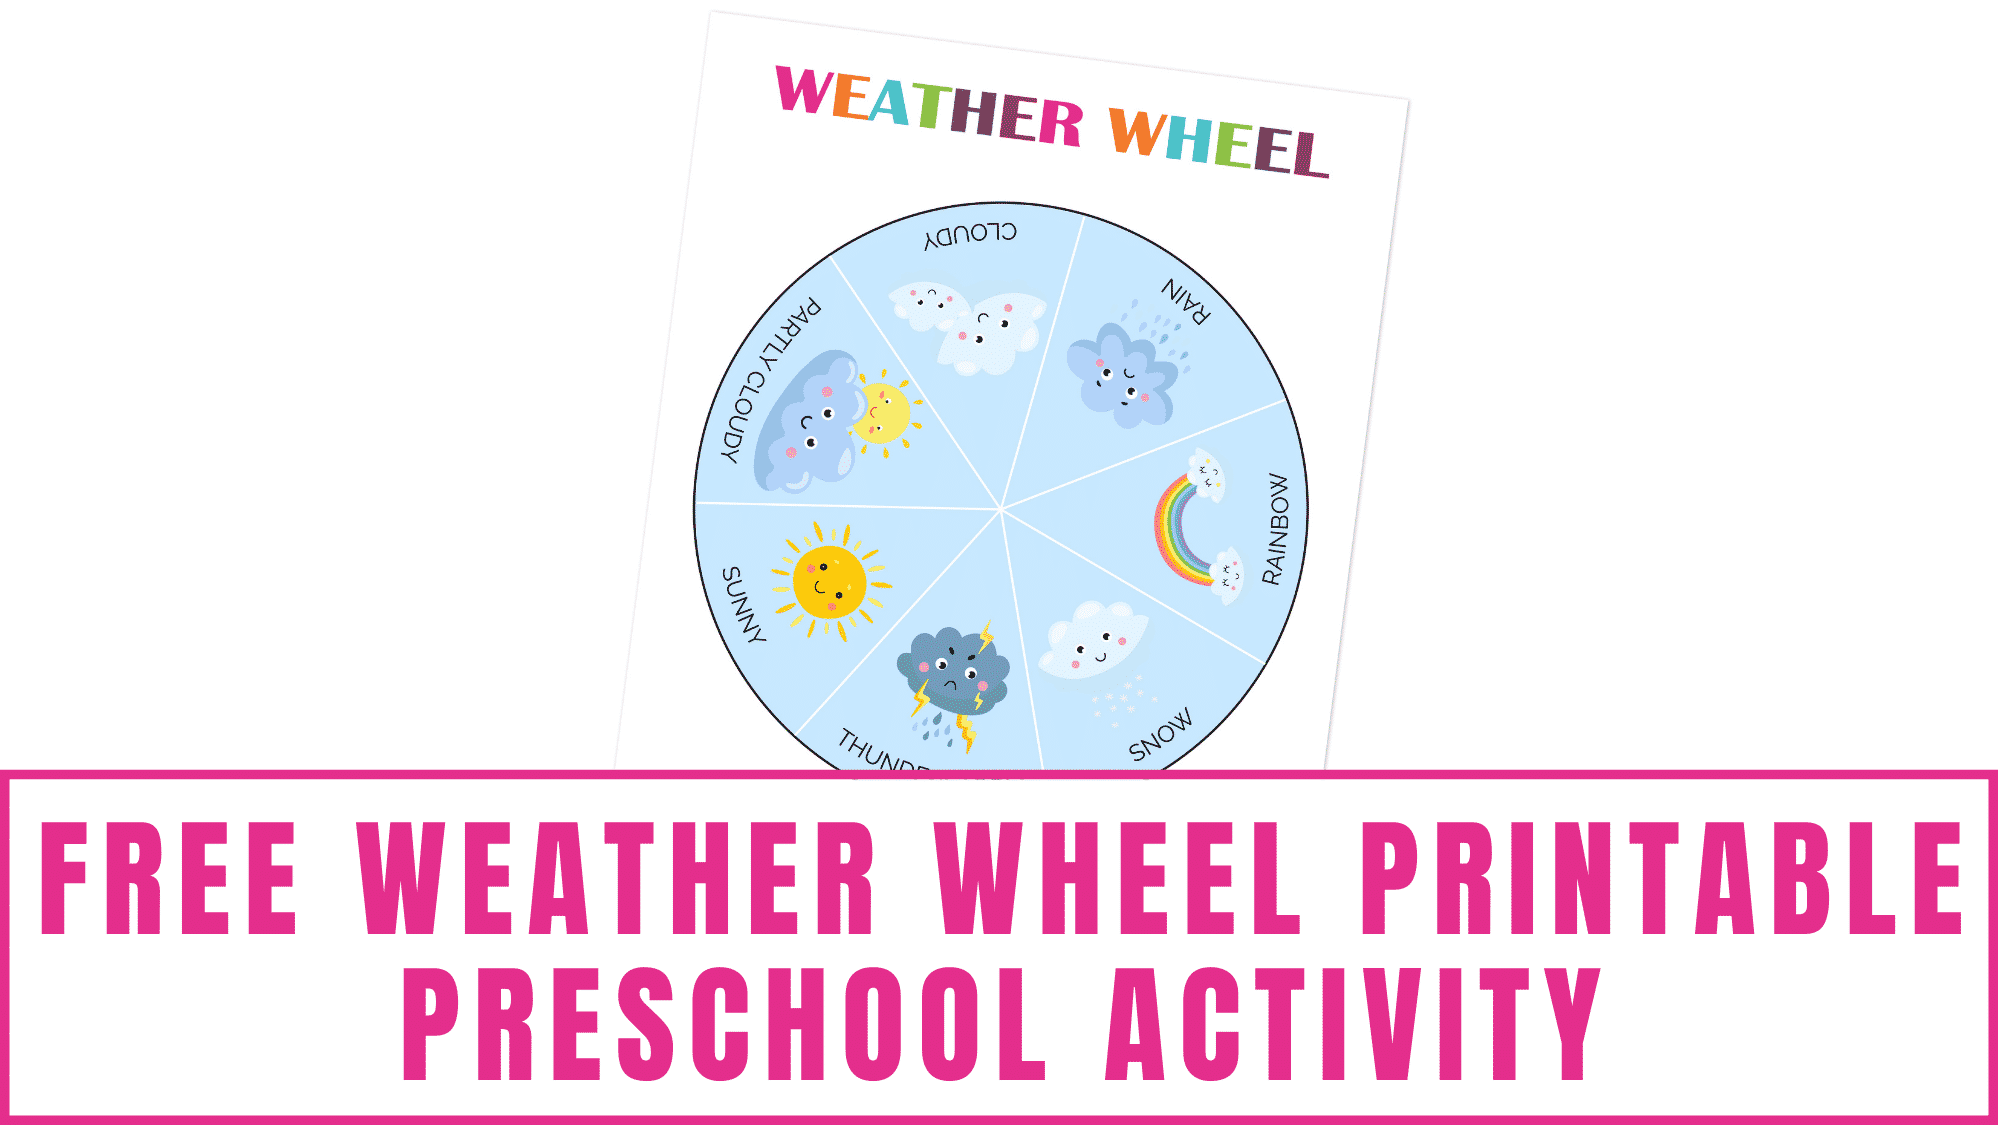 This free weather wheel printable preschool activity will help young kids learn about the different types of weather.